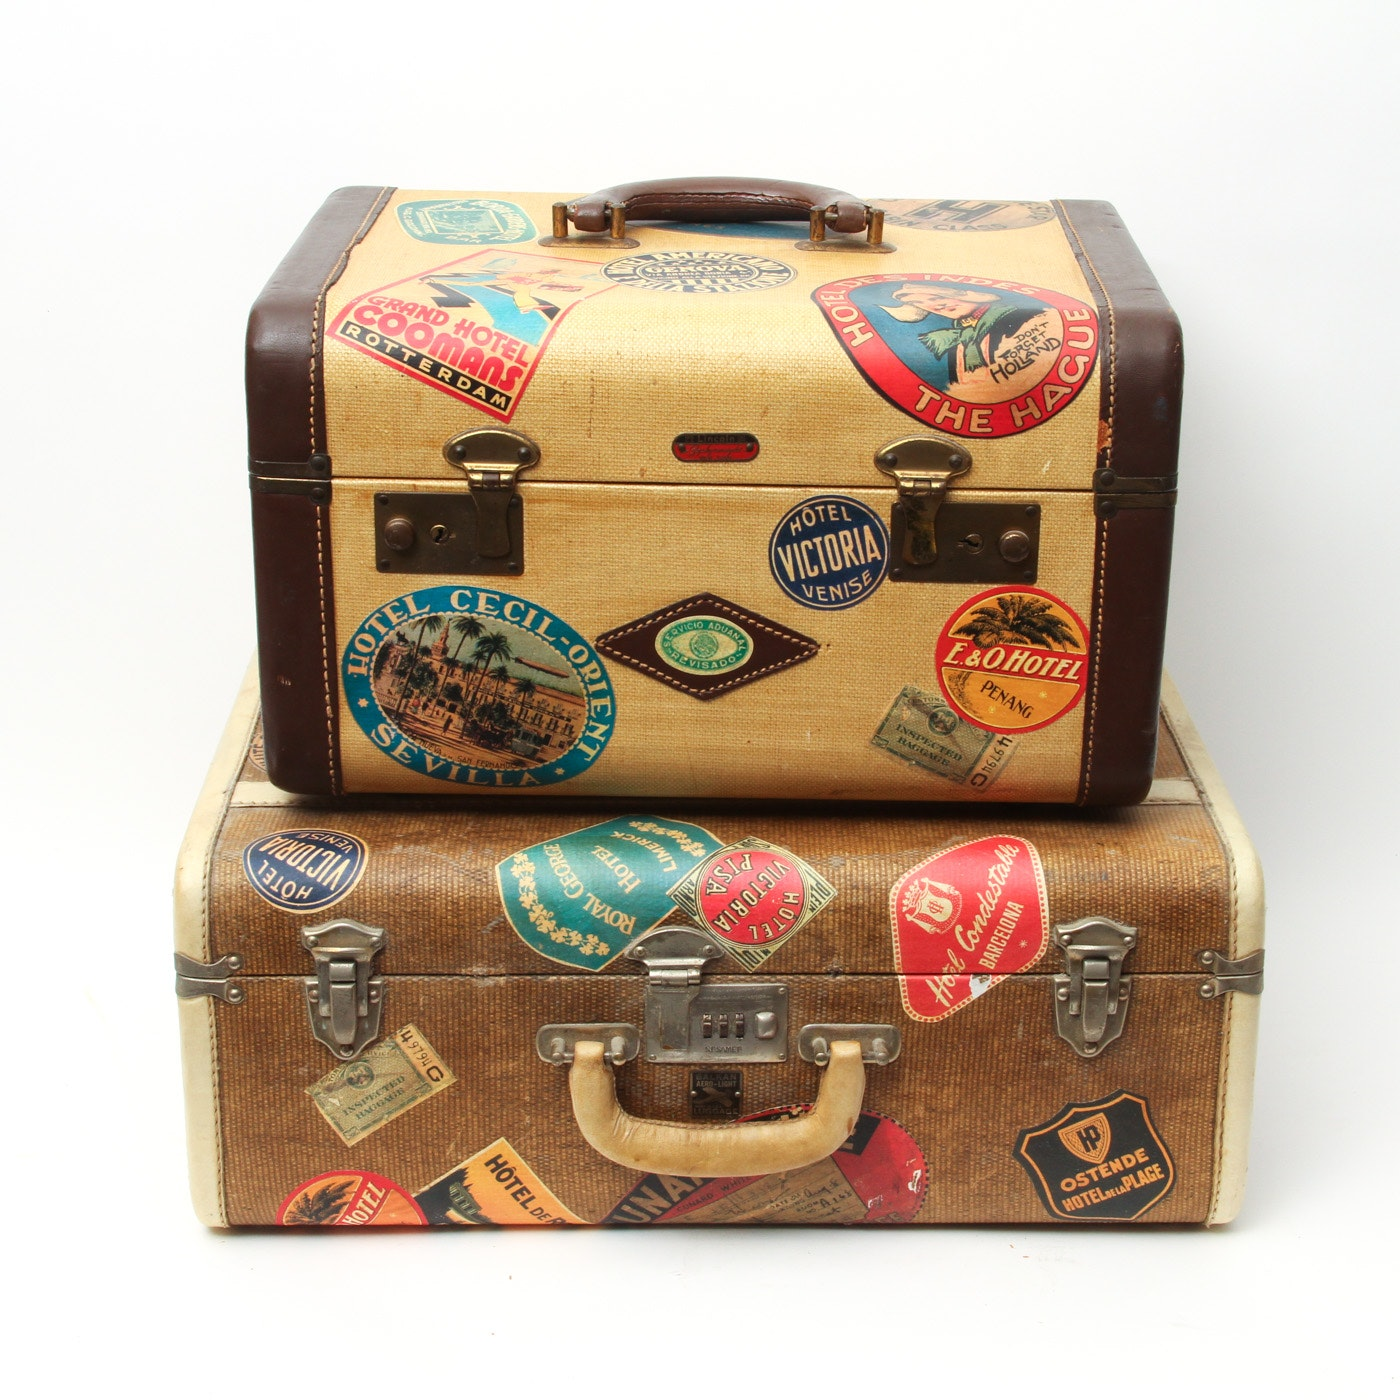 Pair of Vintage Suitcases with Travel Stickers including Lincoln Luggage